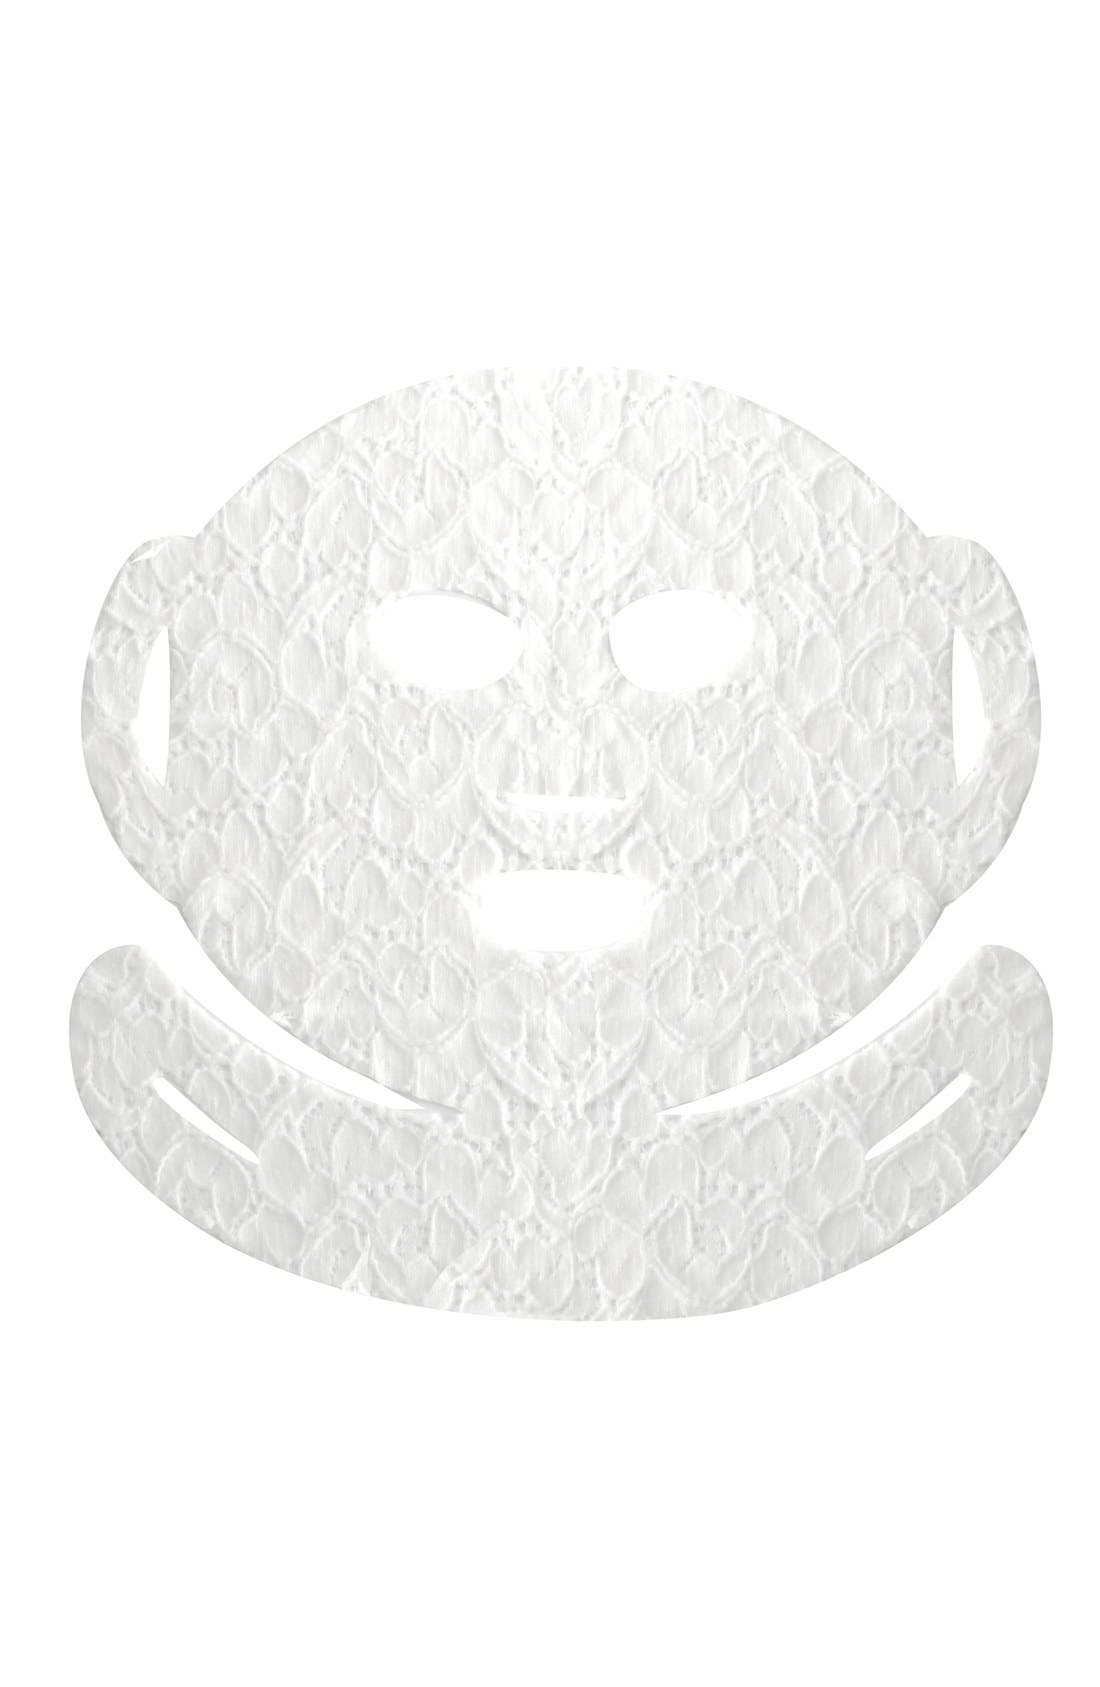 Lace Your Face Rejuvenating Collagen Compression Facial Mask,                             Alternate thumbnail 2, color,                             NONE